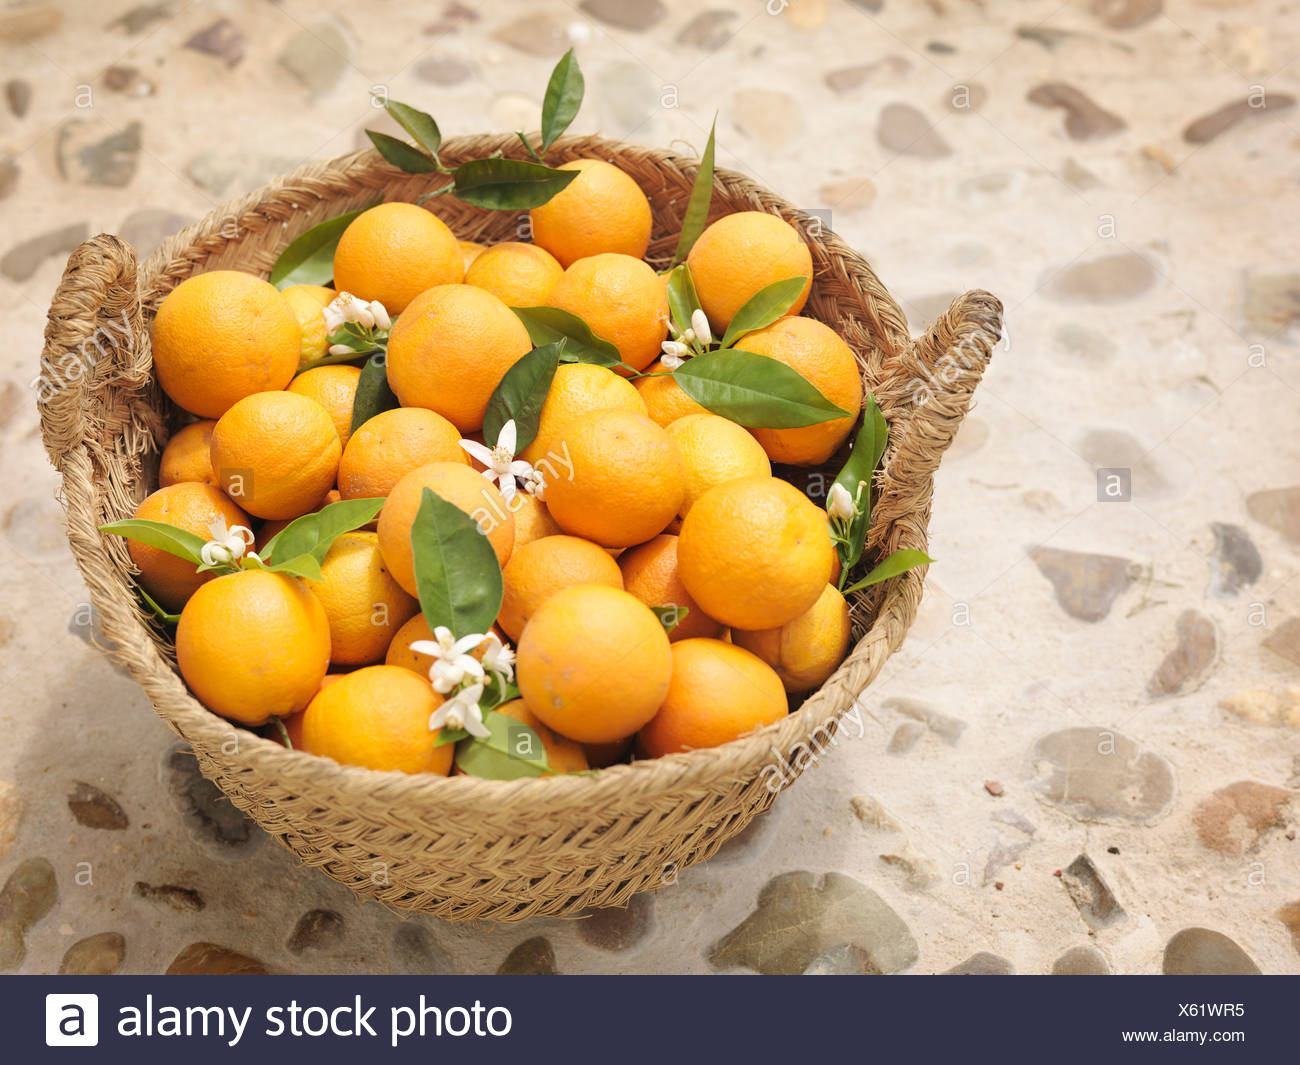 citrus tree flowers stockfotos citrus tree flowers bilder alamy. Black Bedroom Furniture Sets. Home Design Ideas